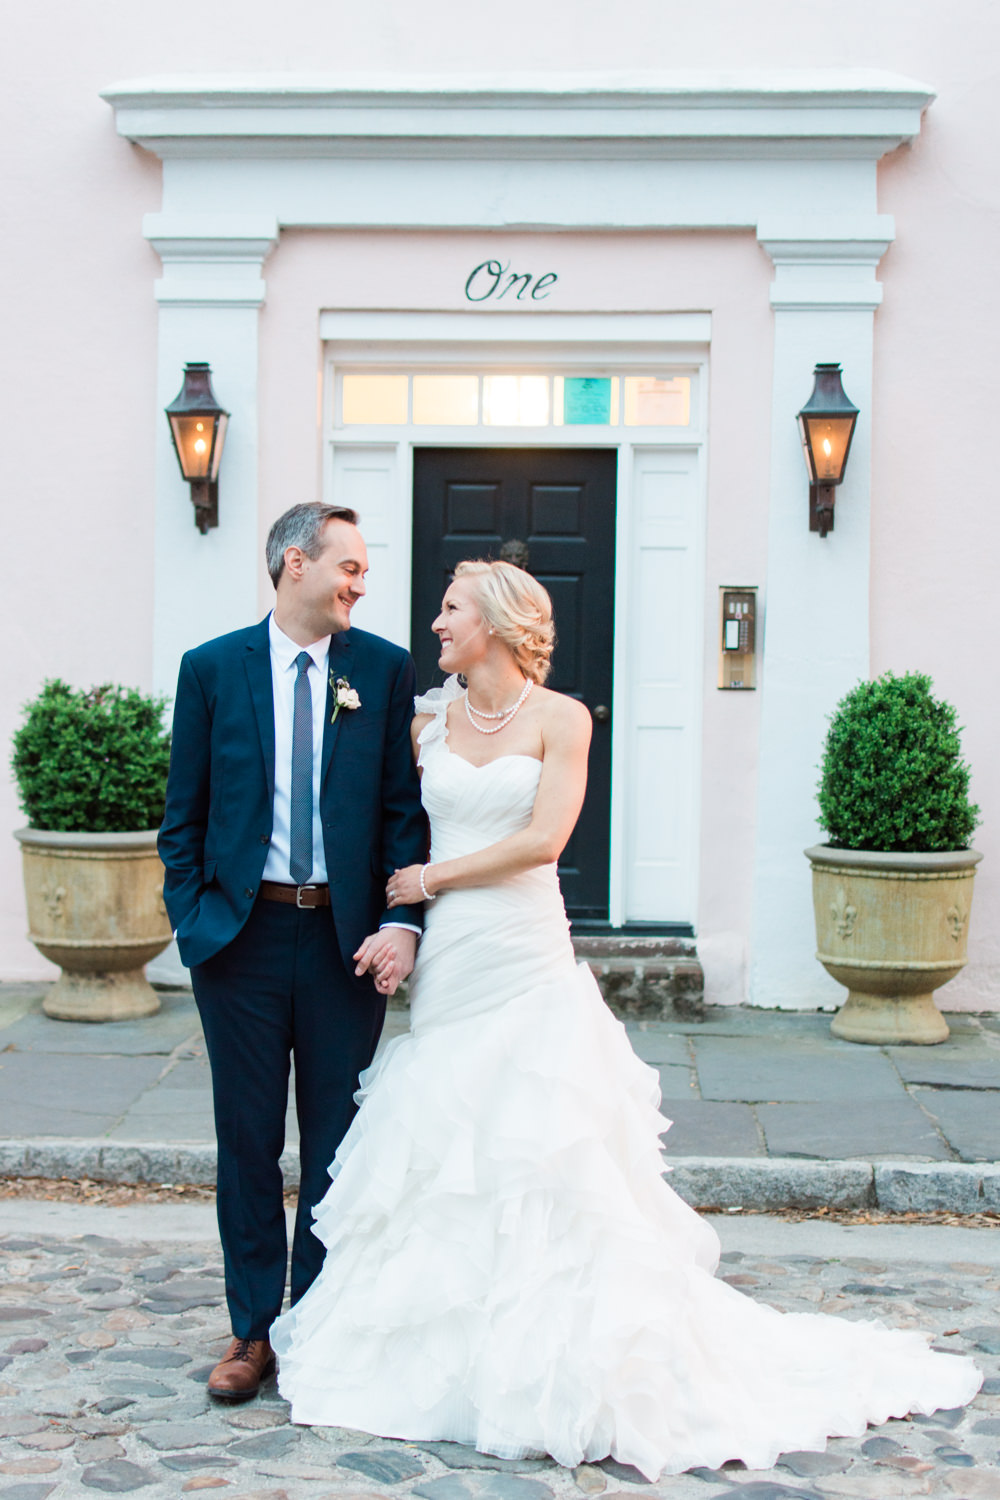 Charleston-Wedding-Photographer-Rachel-Galluzzo-Photography-7656